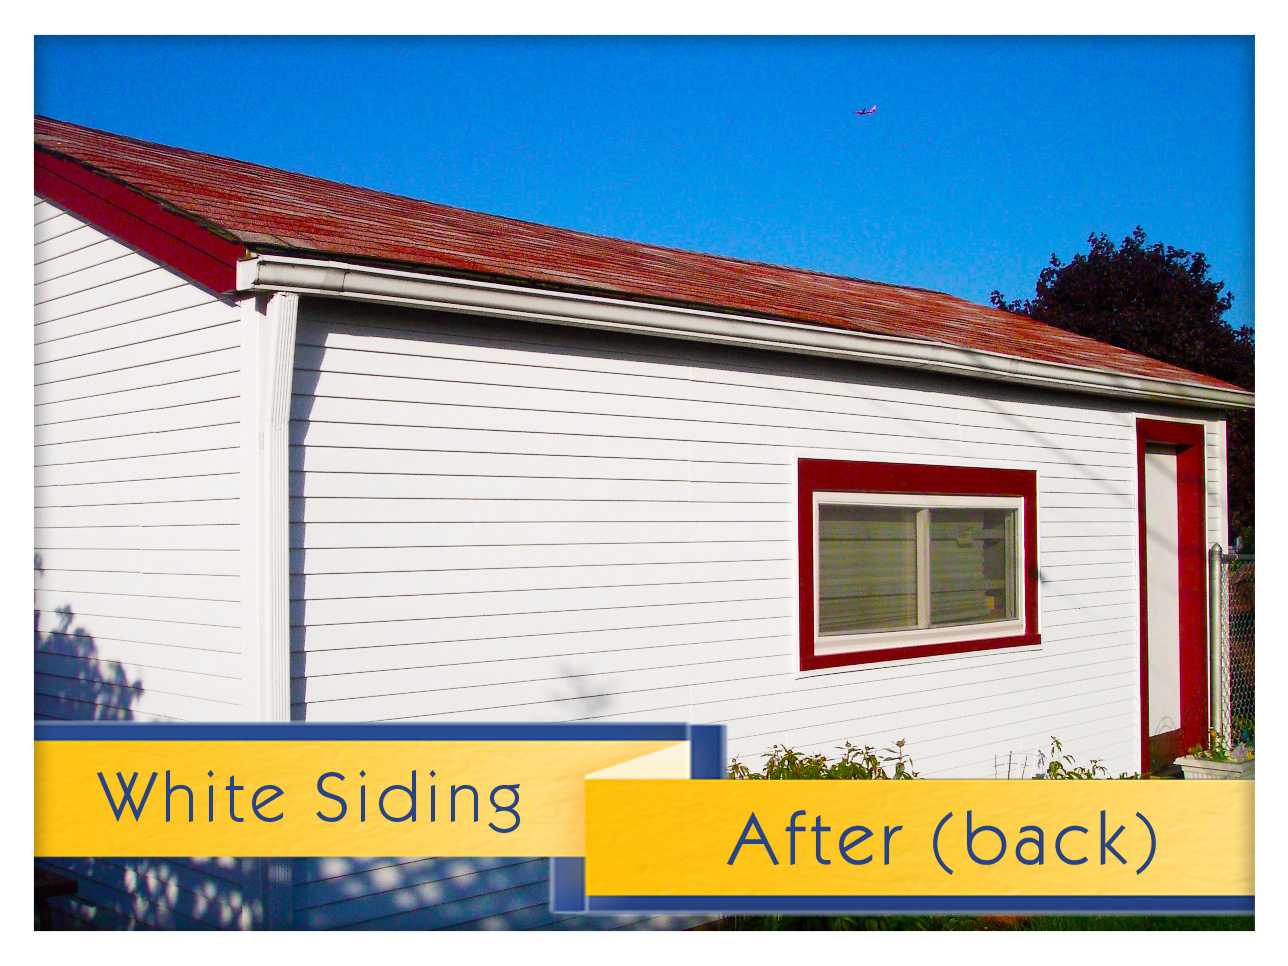 White Siding Ferraro Side Complete 8 Uhlmann Home